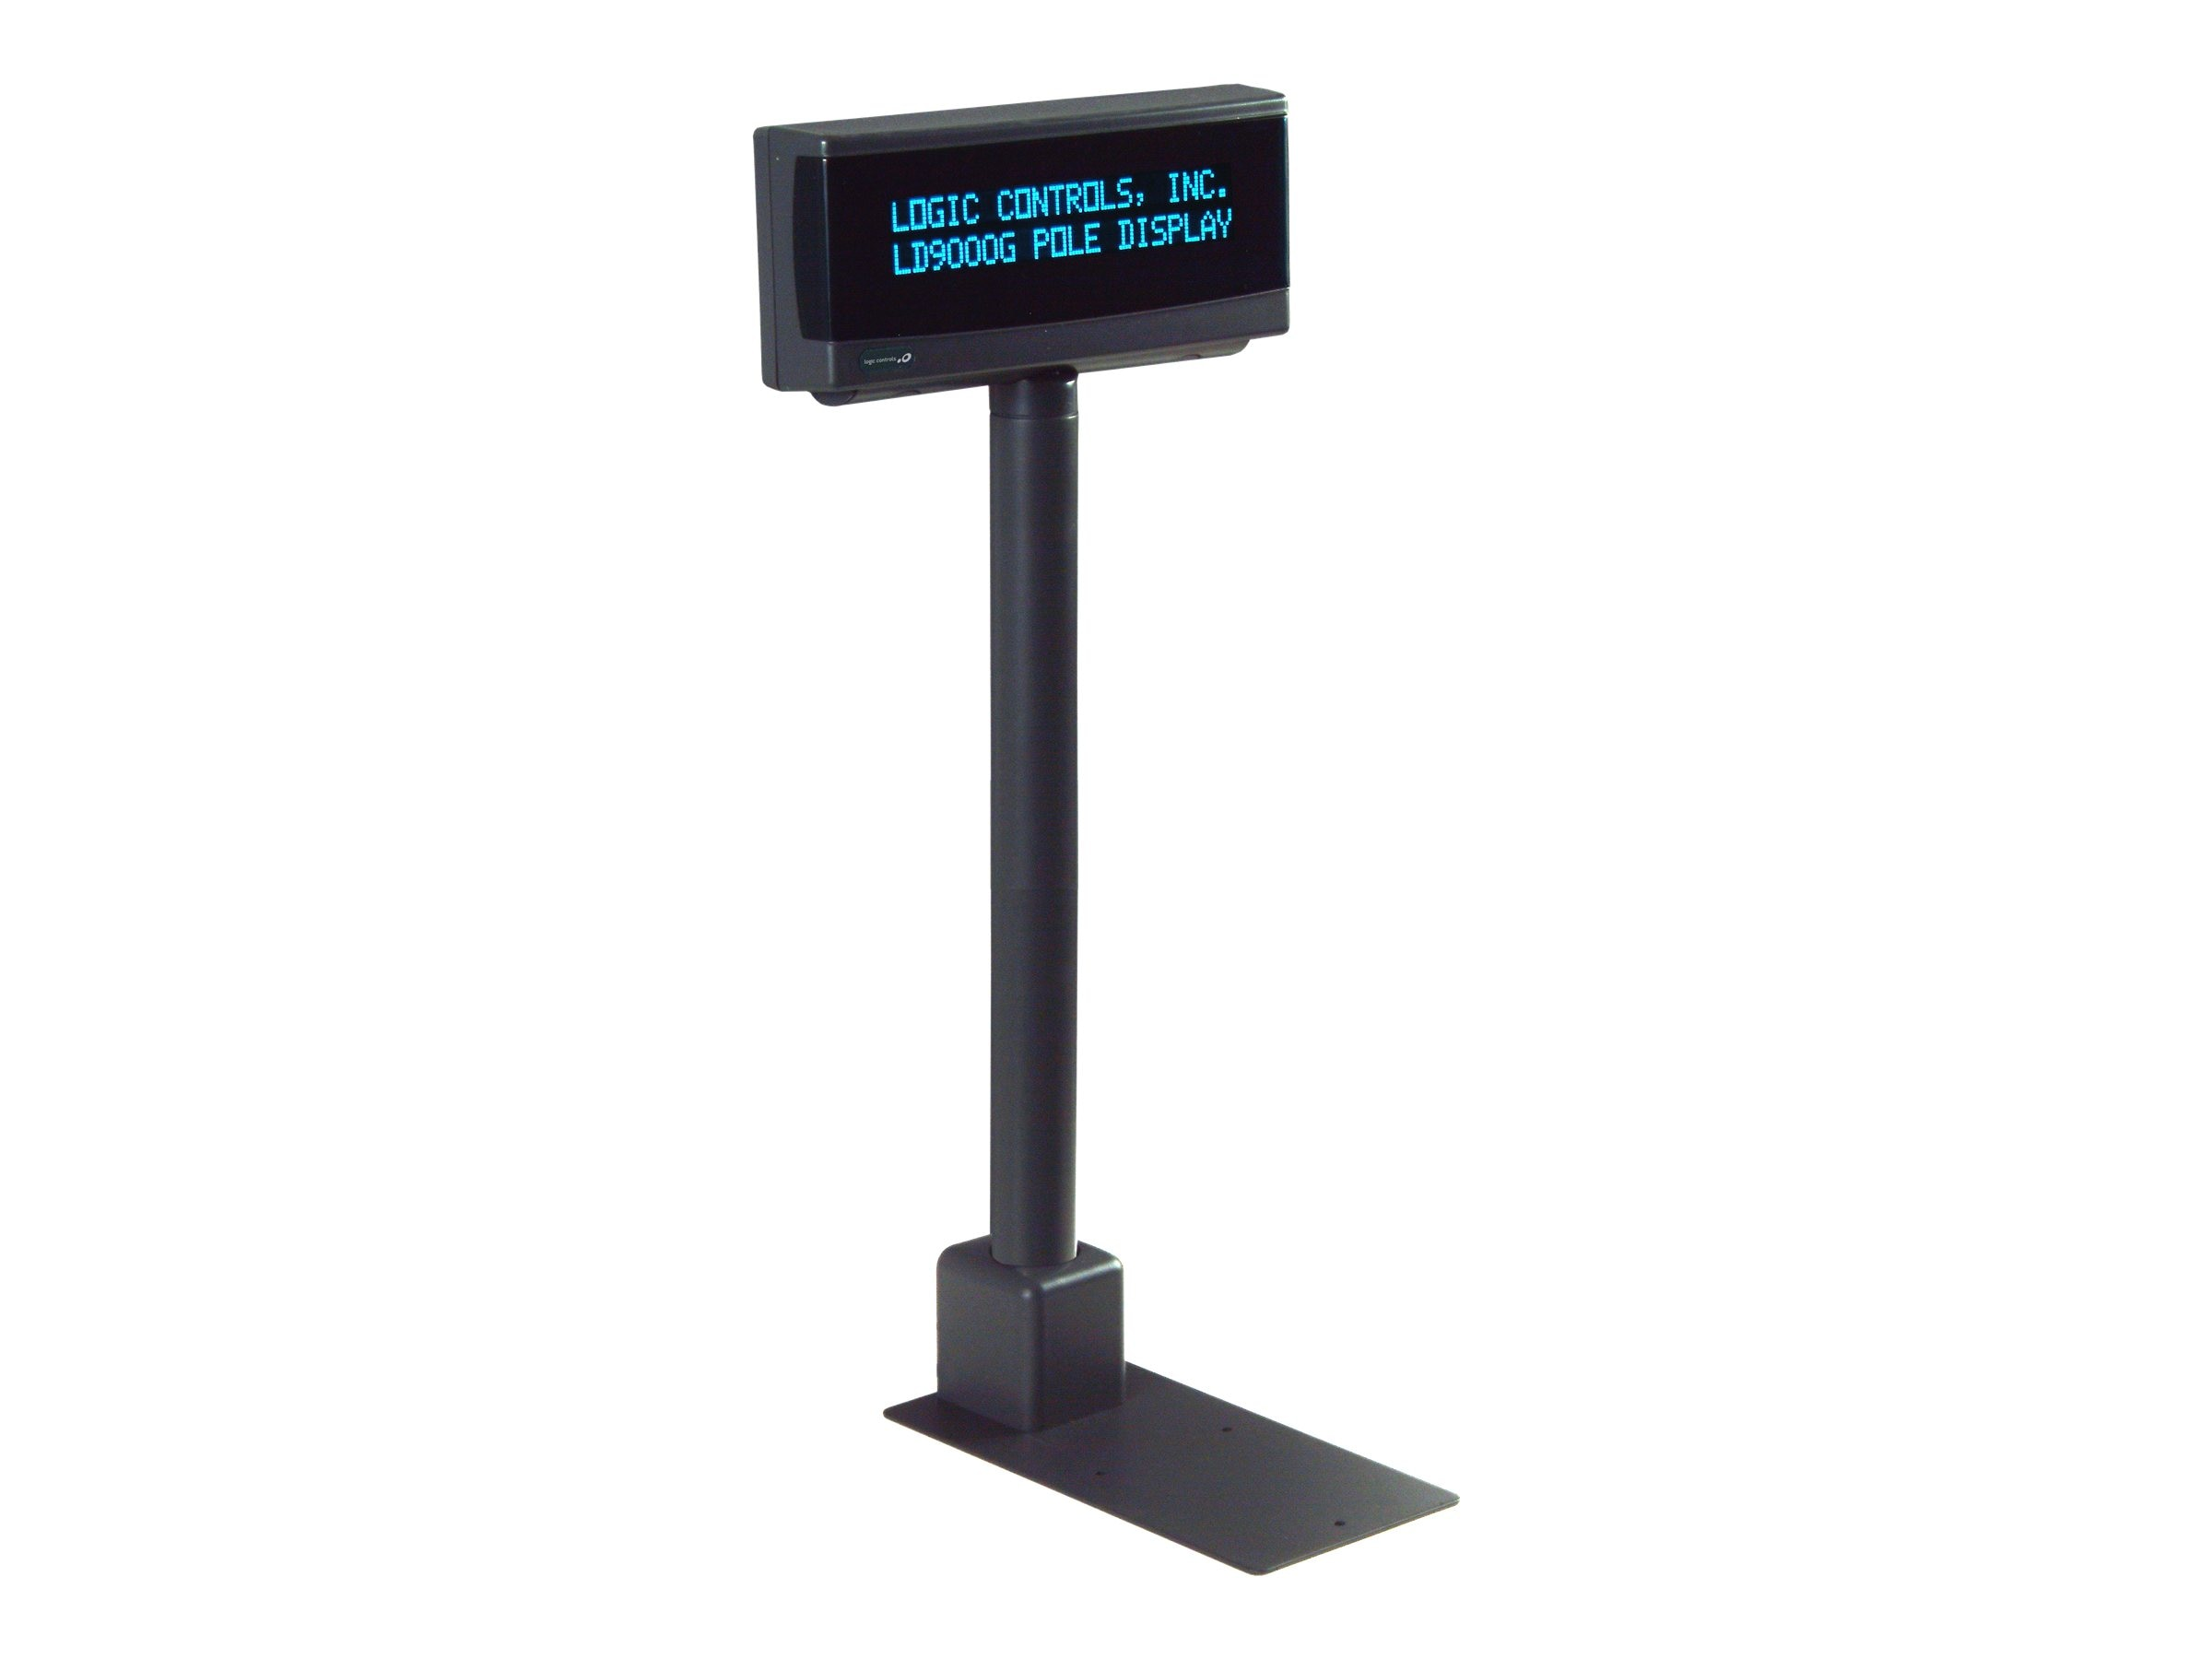 Logic Controls Pole Display, 9.5mm, 2 x 20, RS-232 Universal, External Power Supply, Gray, LDX9000-GY